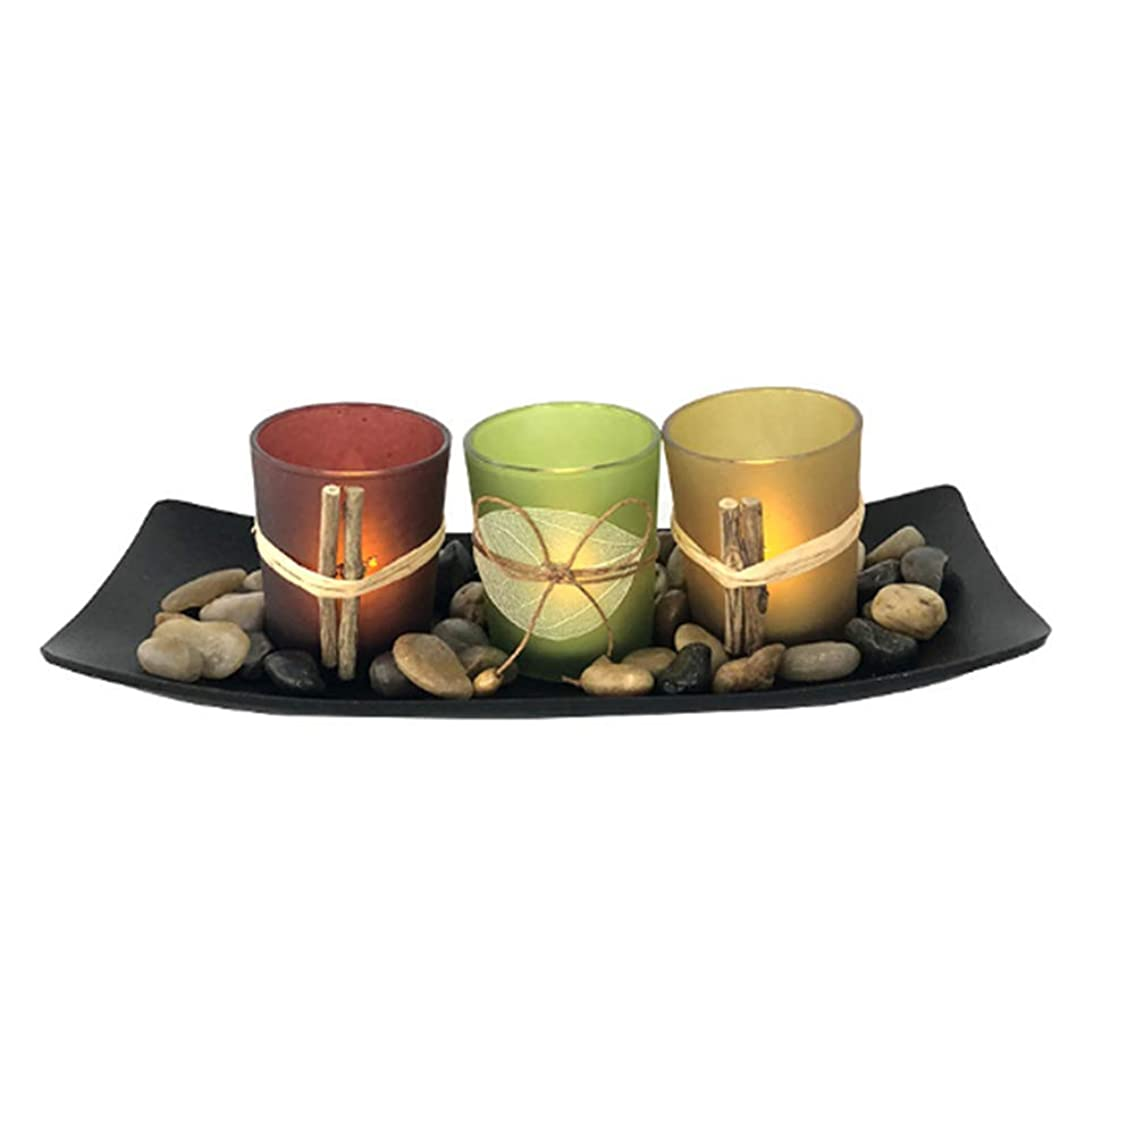 YMOON Tea Light Candles Holder – 1 Set Candlescape with 3 Colored Glass Candle Holders, 1 Pack Rocks and 1 Black Tray